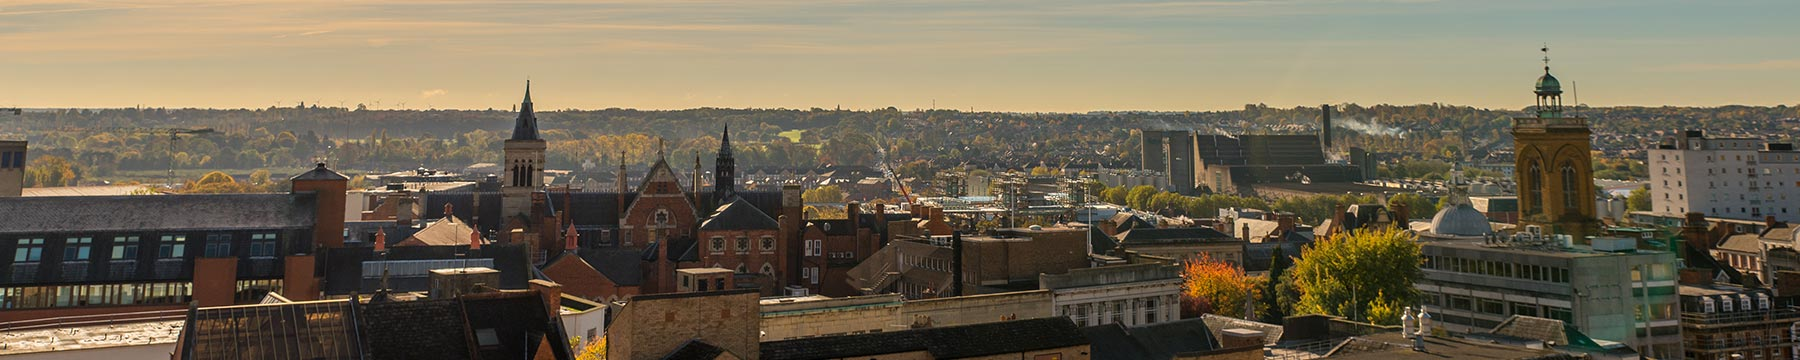 Northampton panorama